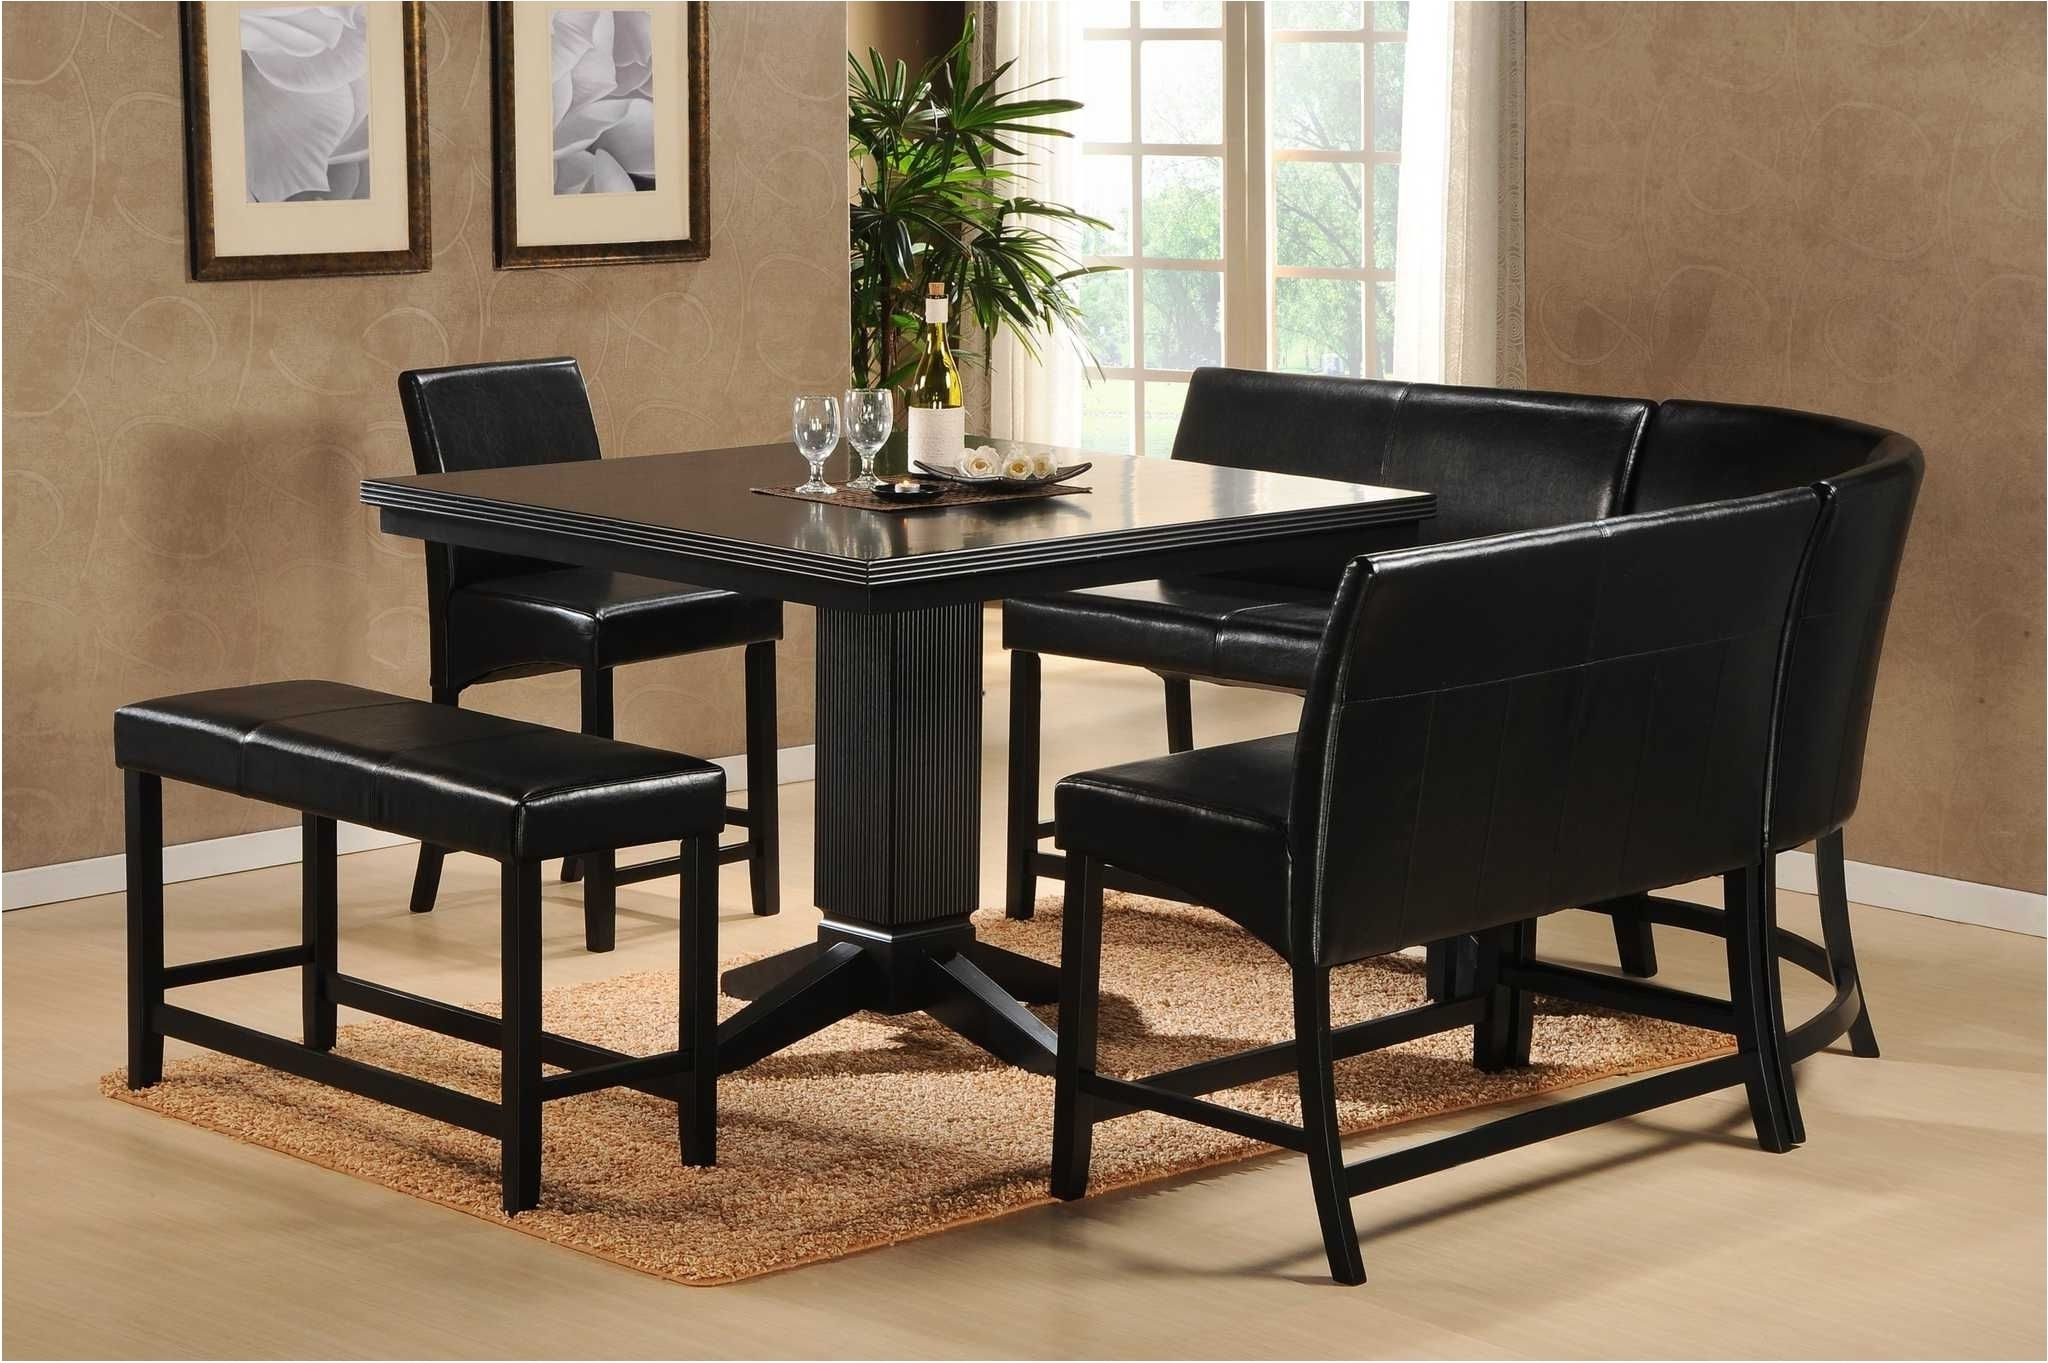 Favorite Incredible Alluring Cheap Small Dining Table Set 6 White Room Sets In Cheap Dining Sets (View 4 of 25)